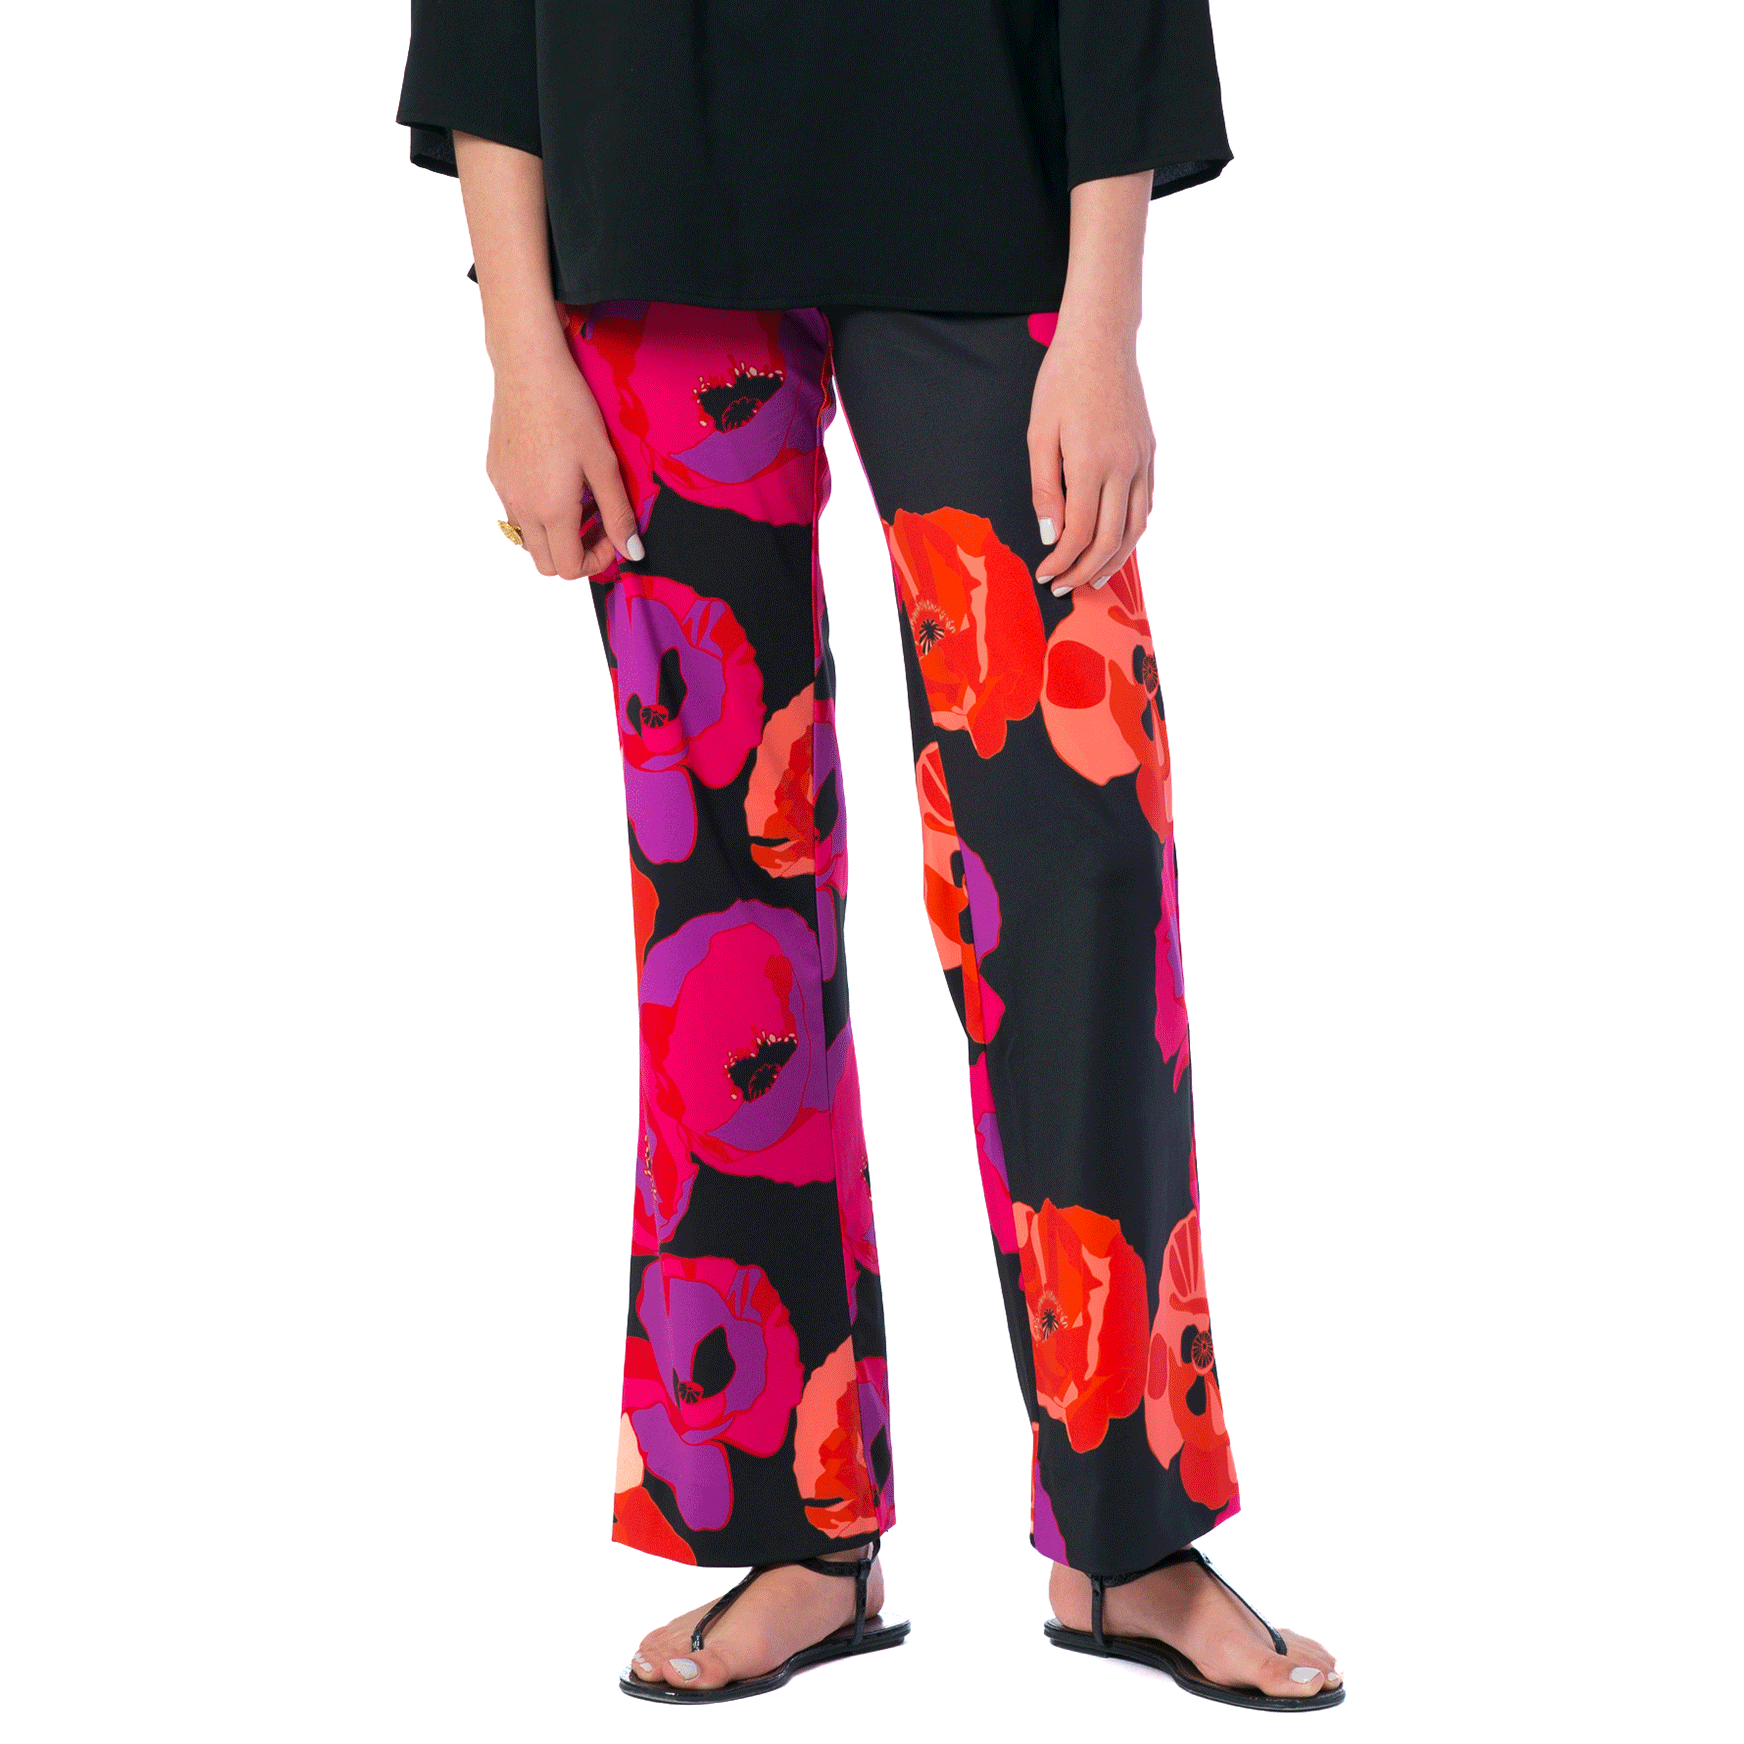 Toby Palazzo Pant in Black Poppy - Elizabeth Ackerman New York